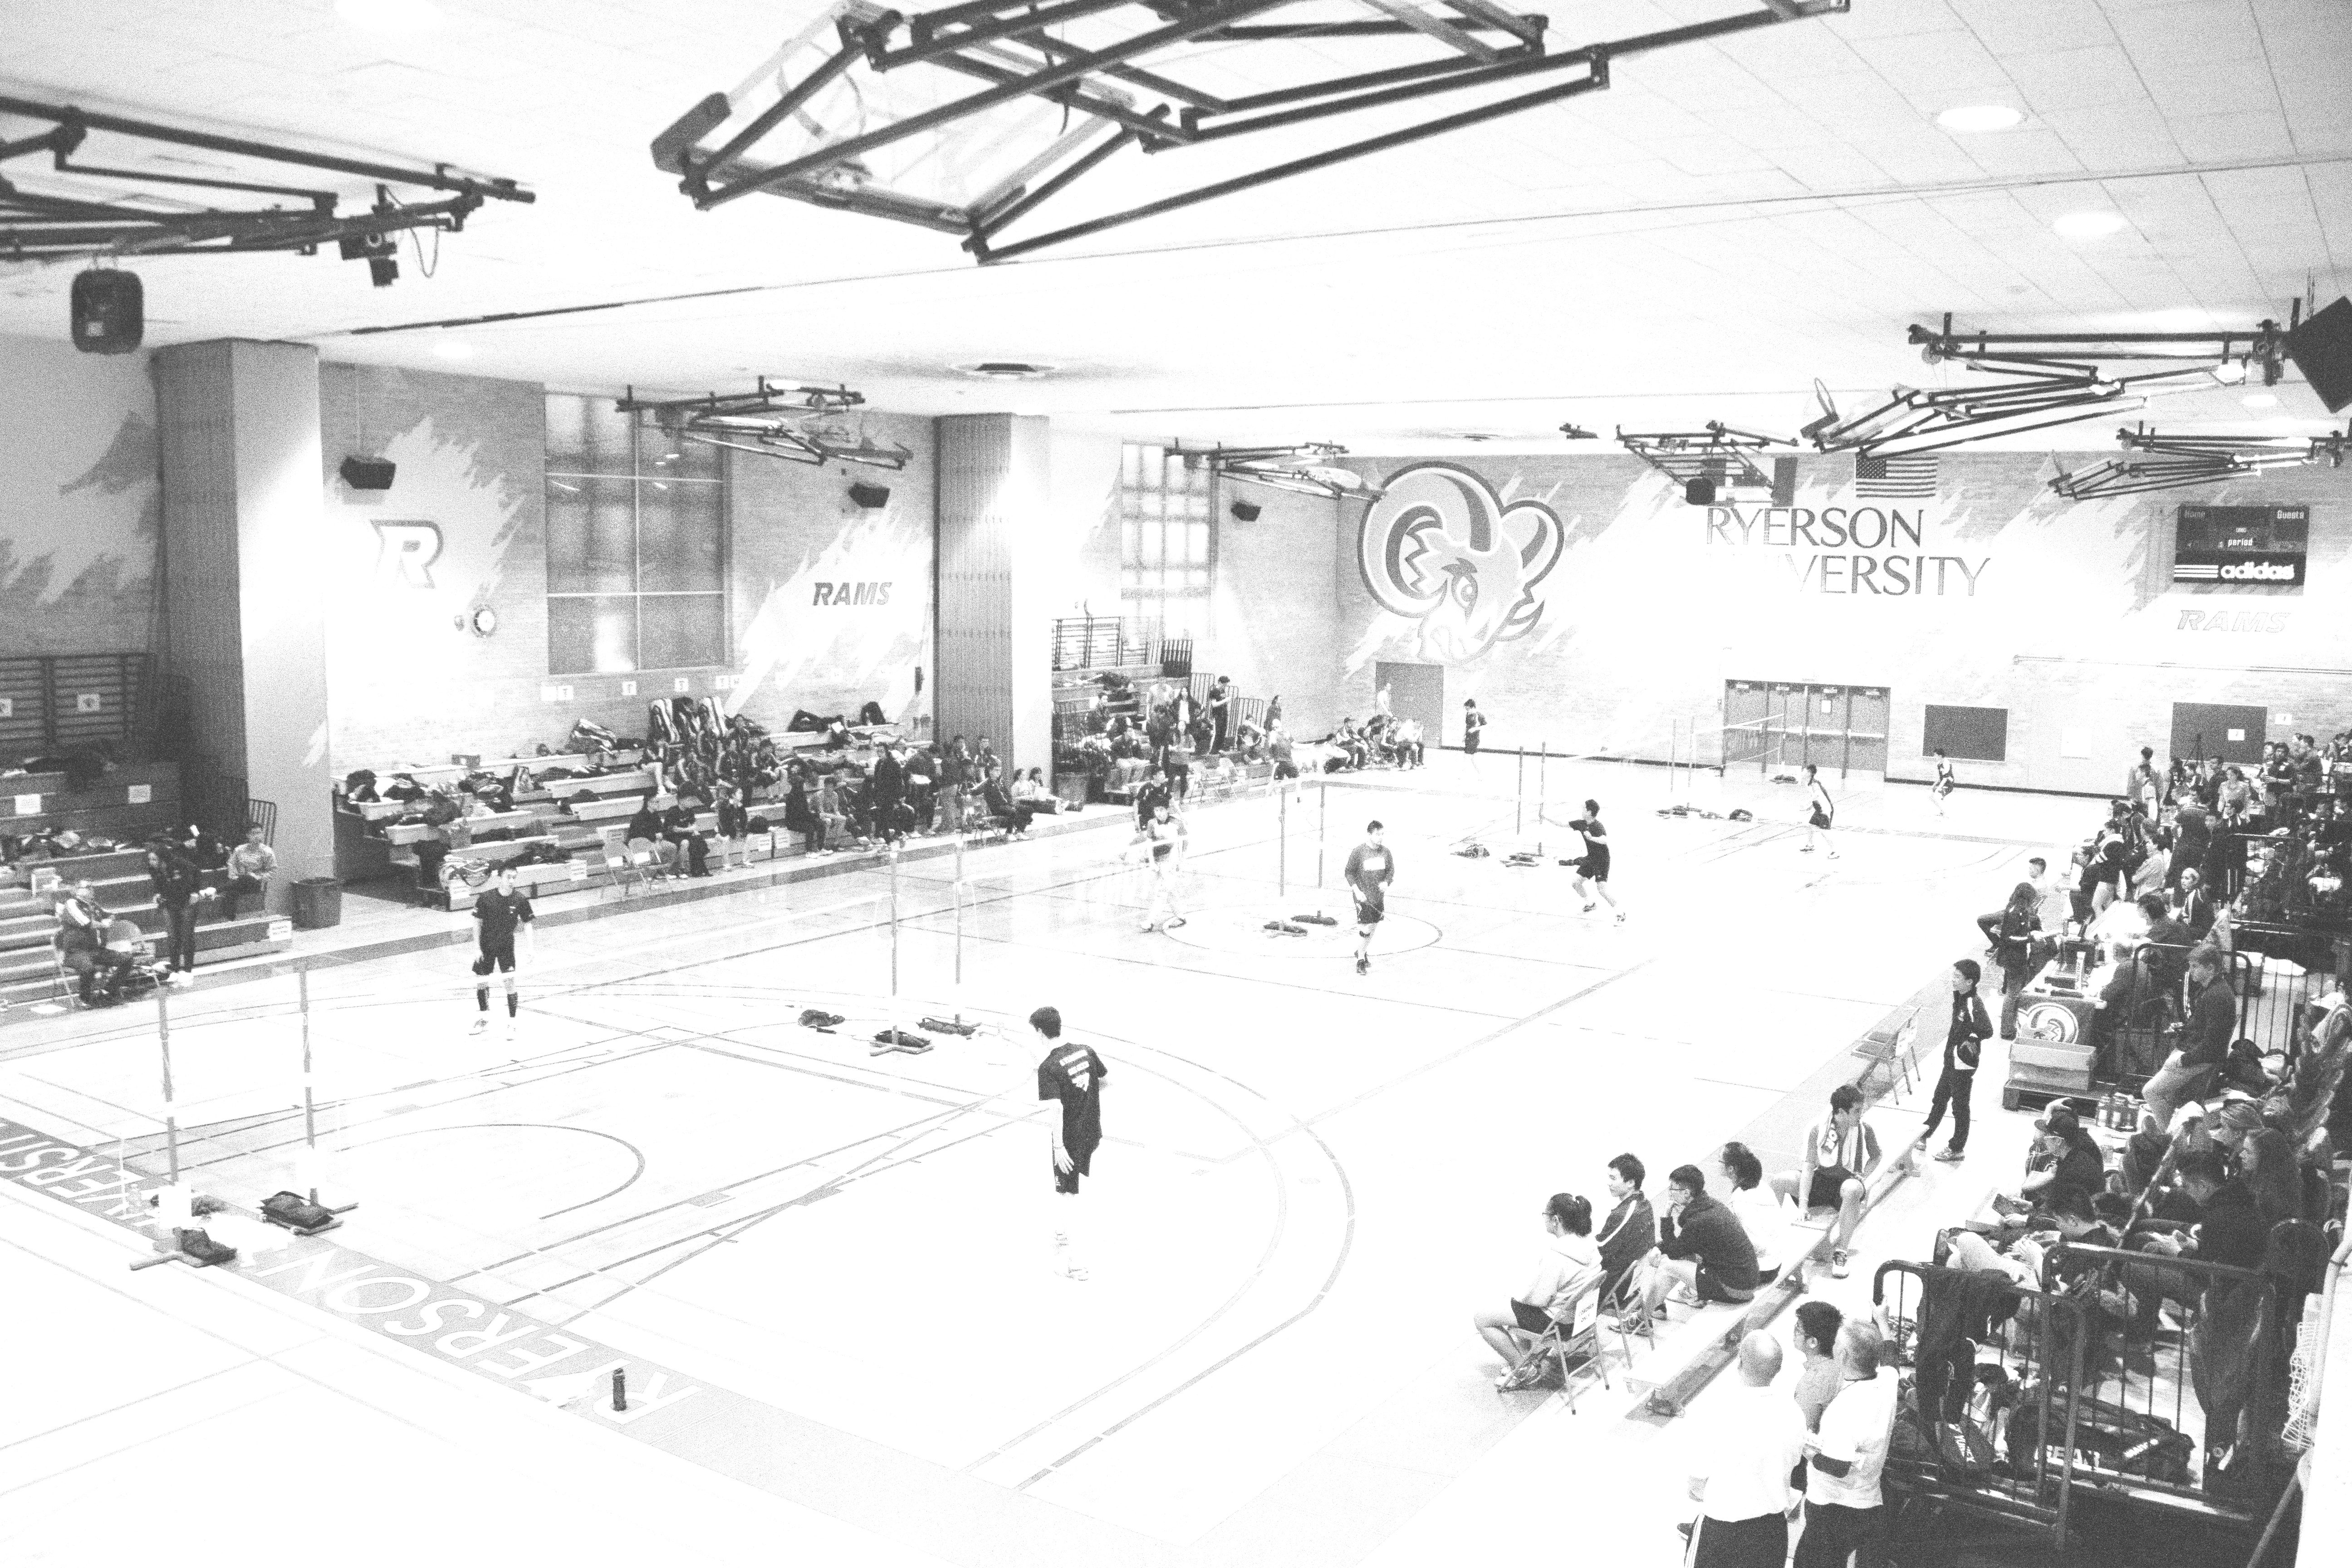 Kerr Hall Gym was host to the OUA Badminton Championship all weekend.